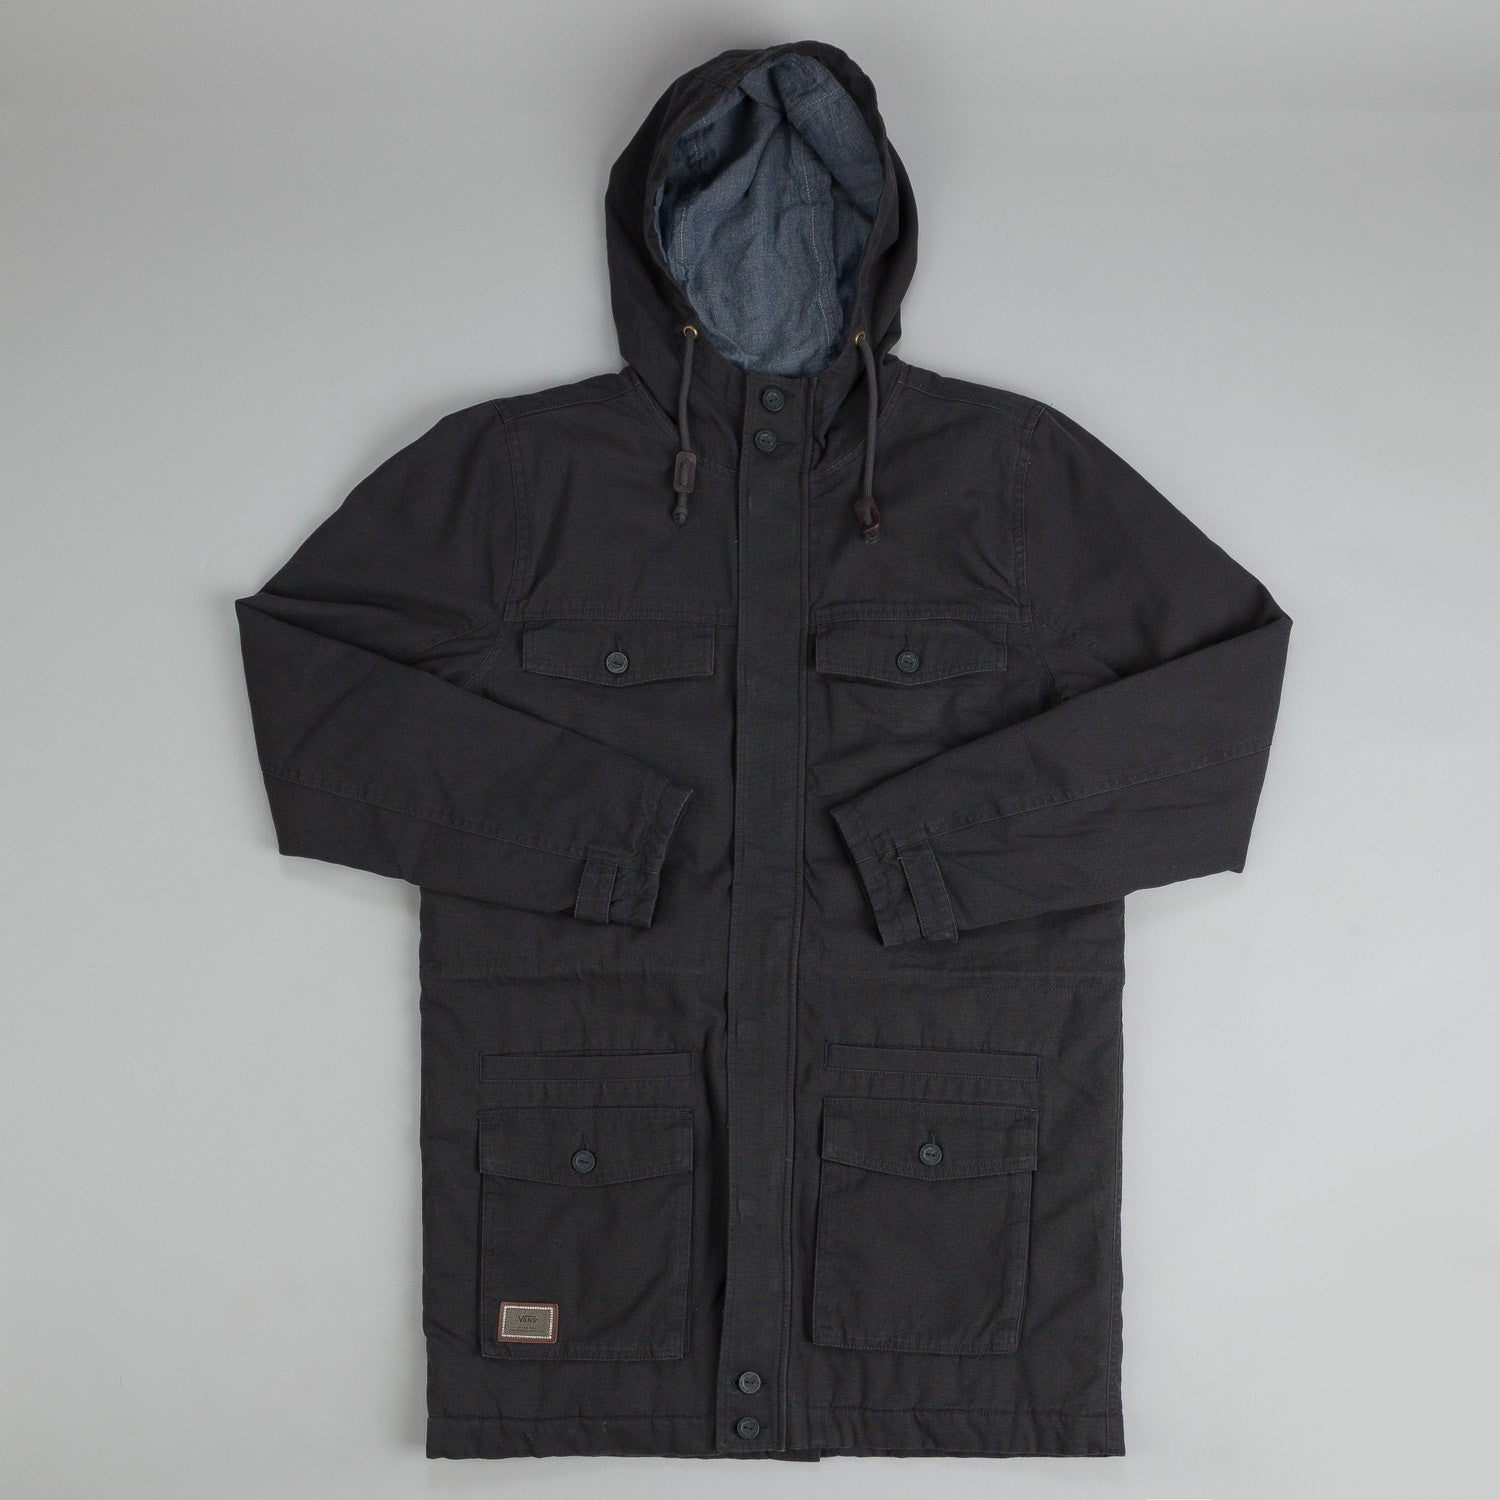 Vans Moreno Jacket New Charcoal